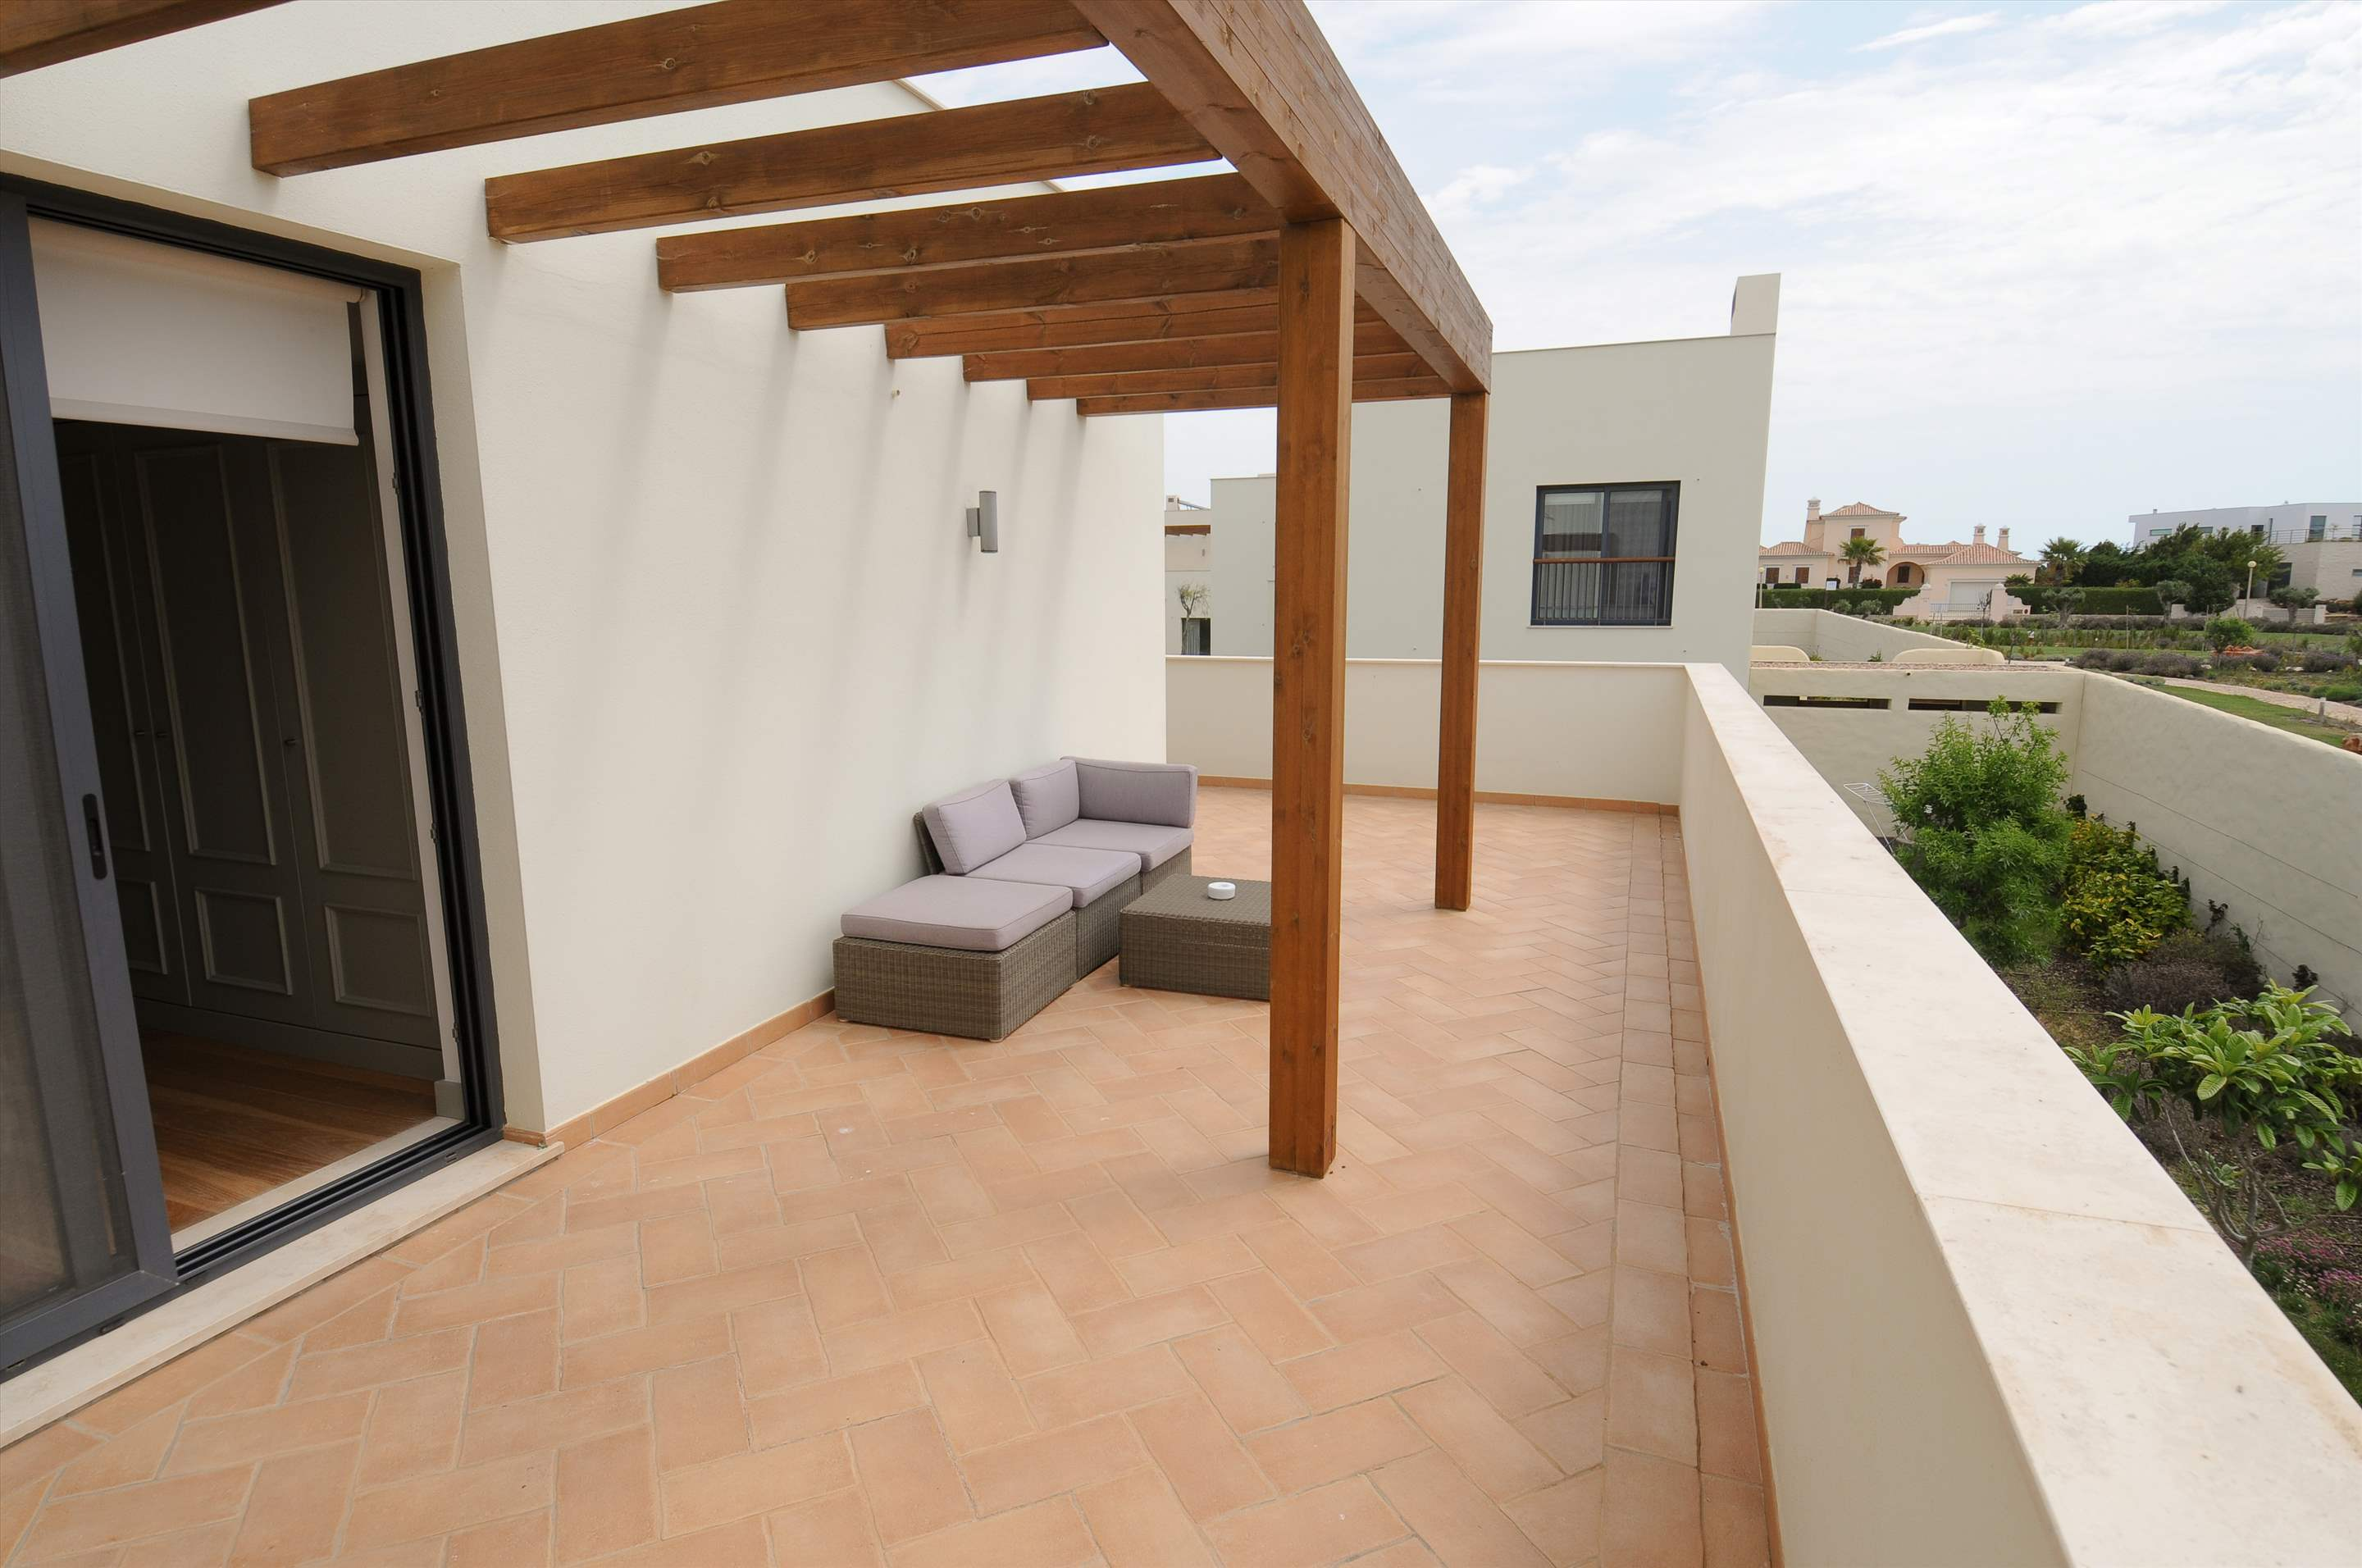 Martinhal Village Garden House, Grand Deluxe Two Bedroom, 2 bedroom villa in Martinhal Sagres, Algarve Photo #19